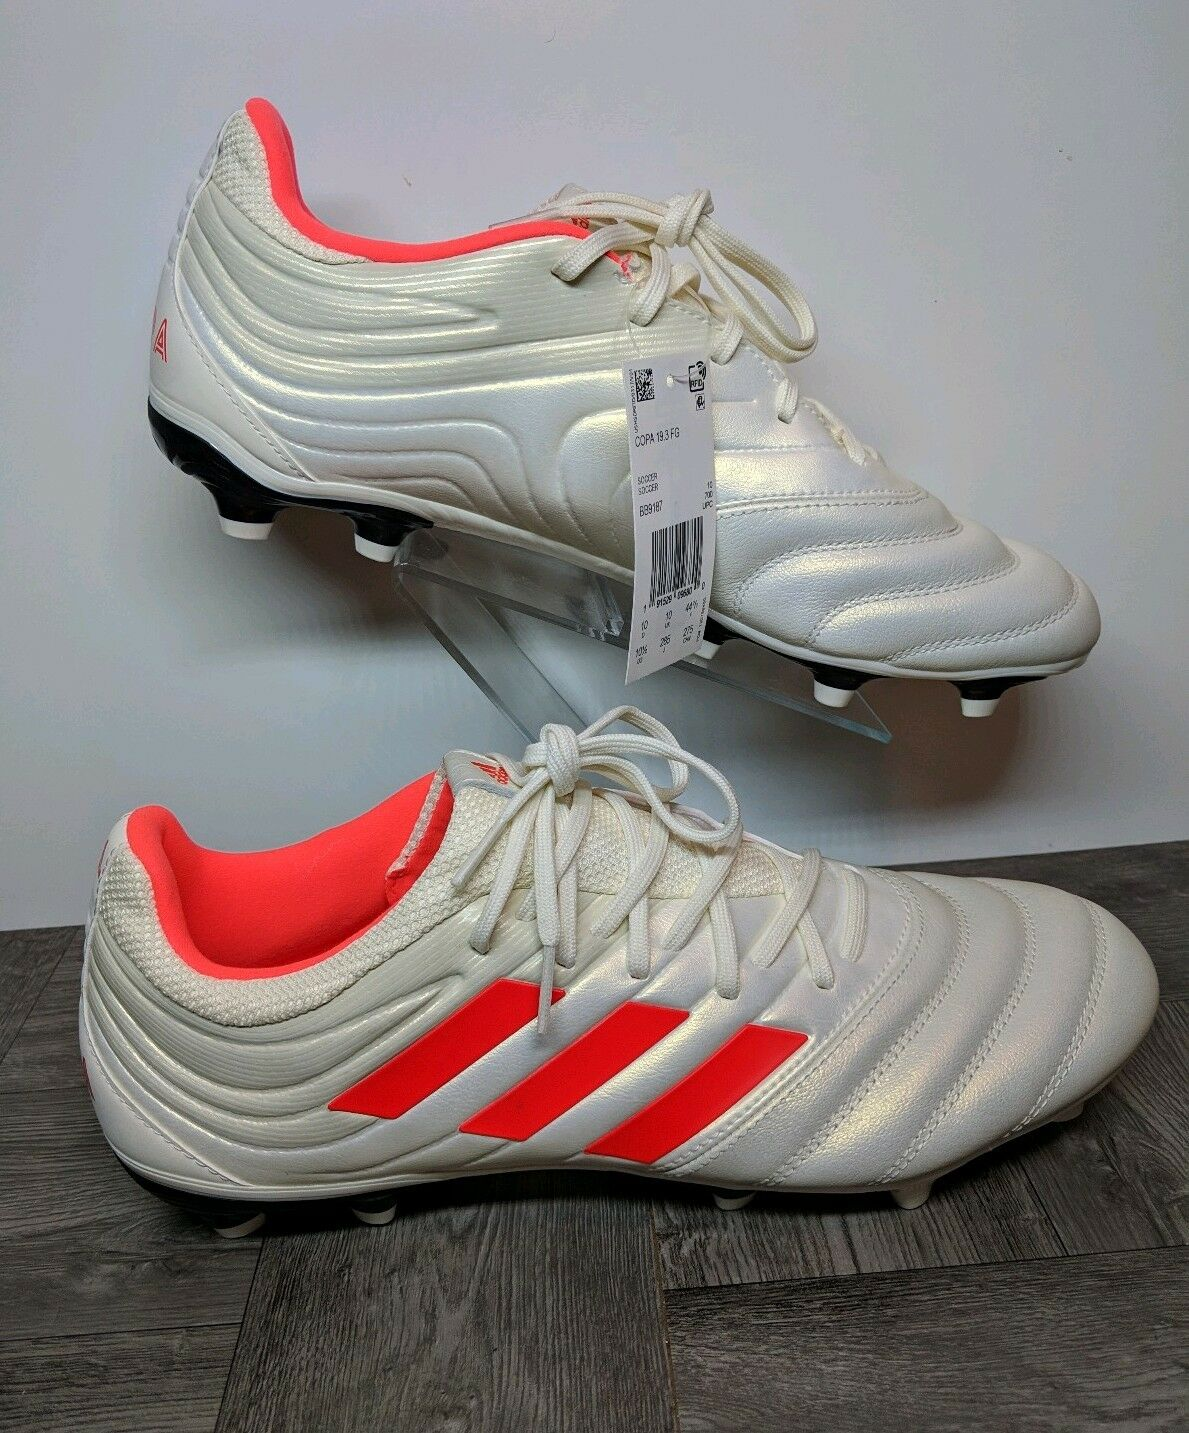 d0310675c3a New Adidas Copa 19.3 19.3 19.3 FG Soccer Cleats Off-White Solar Red BB9187  Men s Sz 7.5 579284